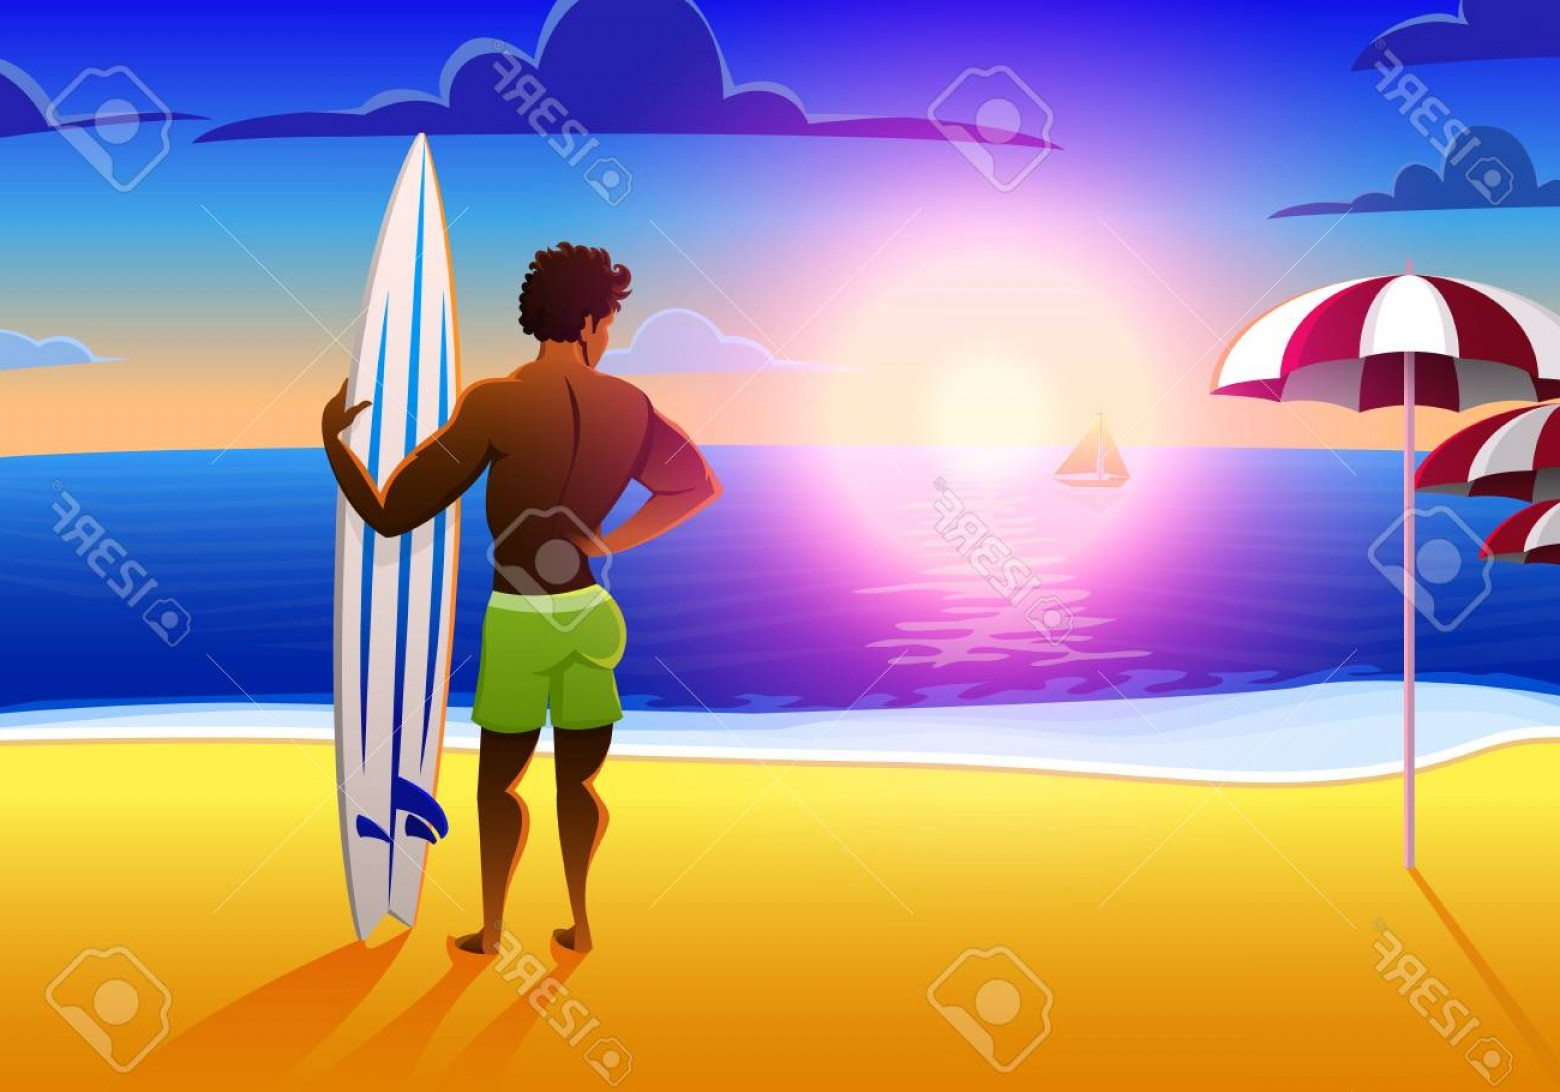 Surfer Beach Sunset Vector: Photostock Vector Surfer On The Ocean Beach At Sunset With Surfboard Vector Illustration Vintage Effect Sports African